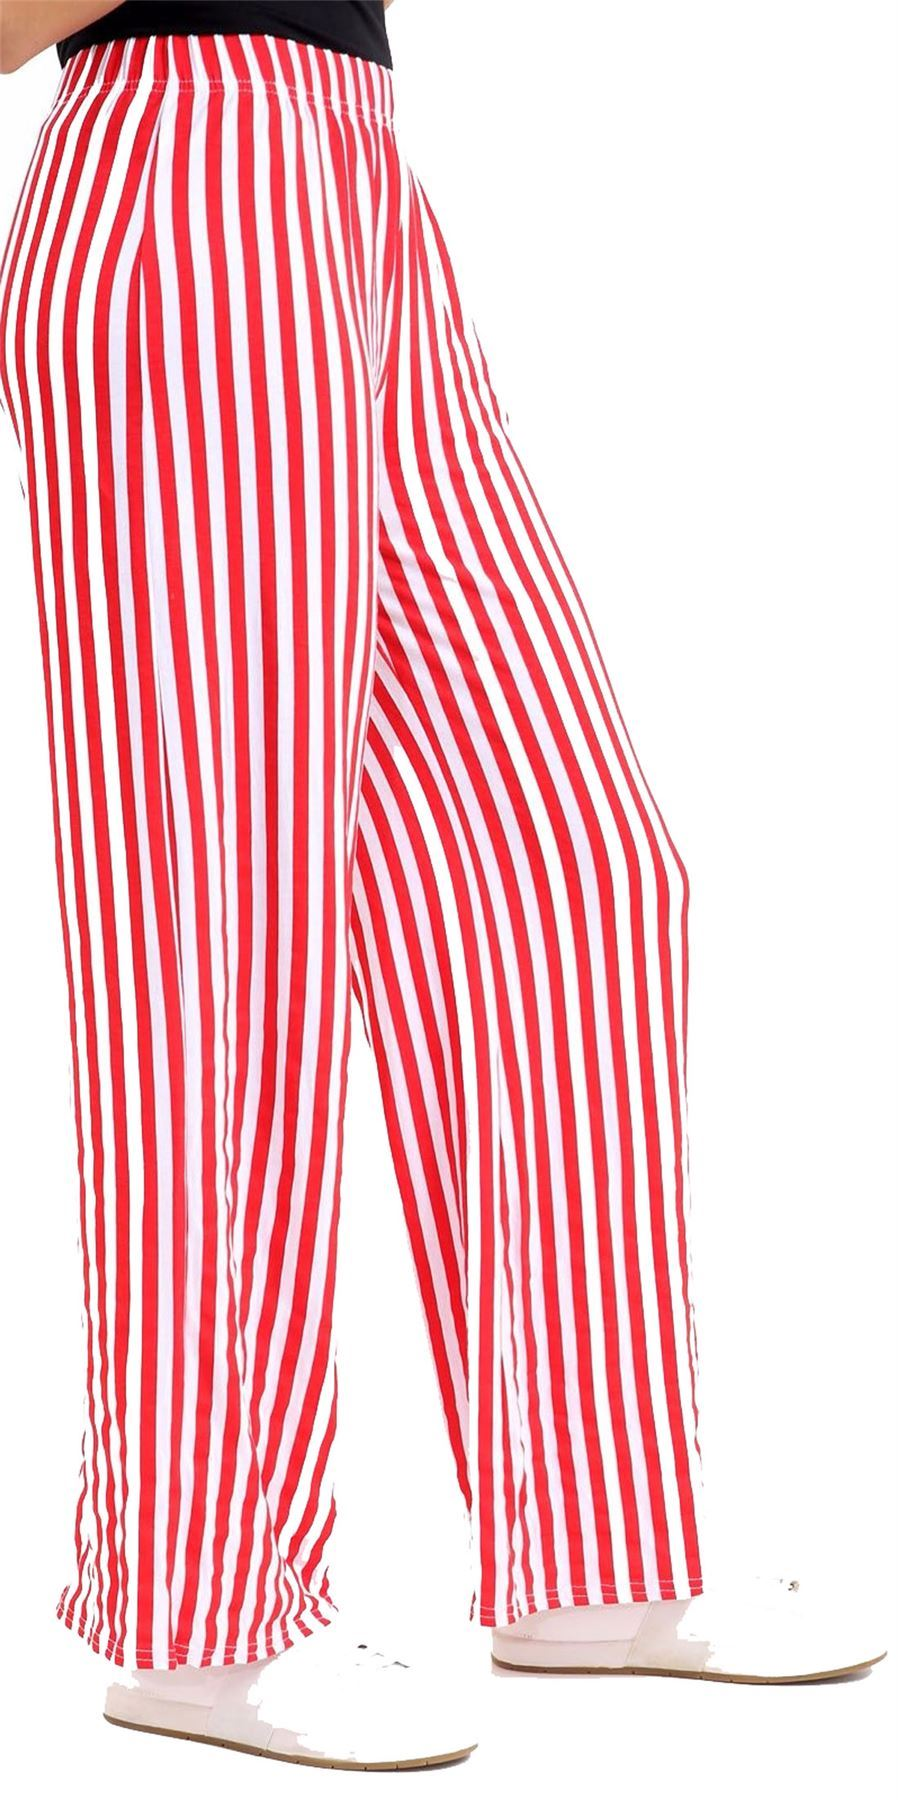 New-Ladies-Floral-Printed-Wide-Leg-Flared-Parallel-Baggy-Trousers-Pants-Palazzo thumbnail 45